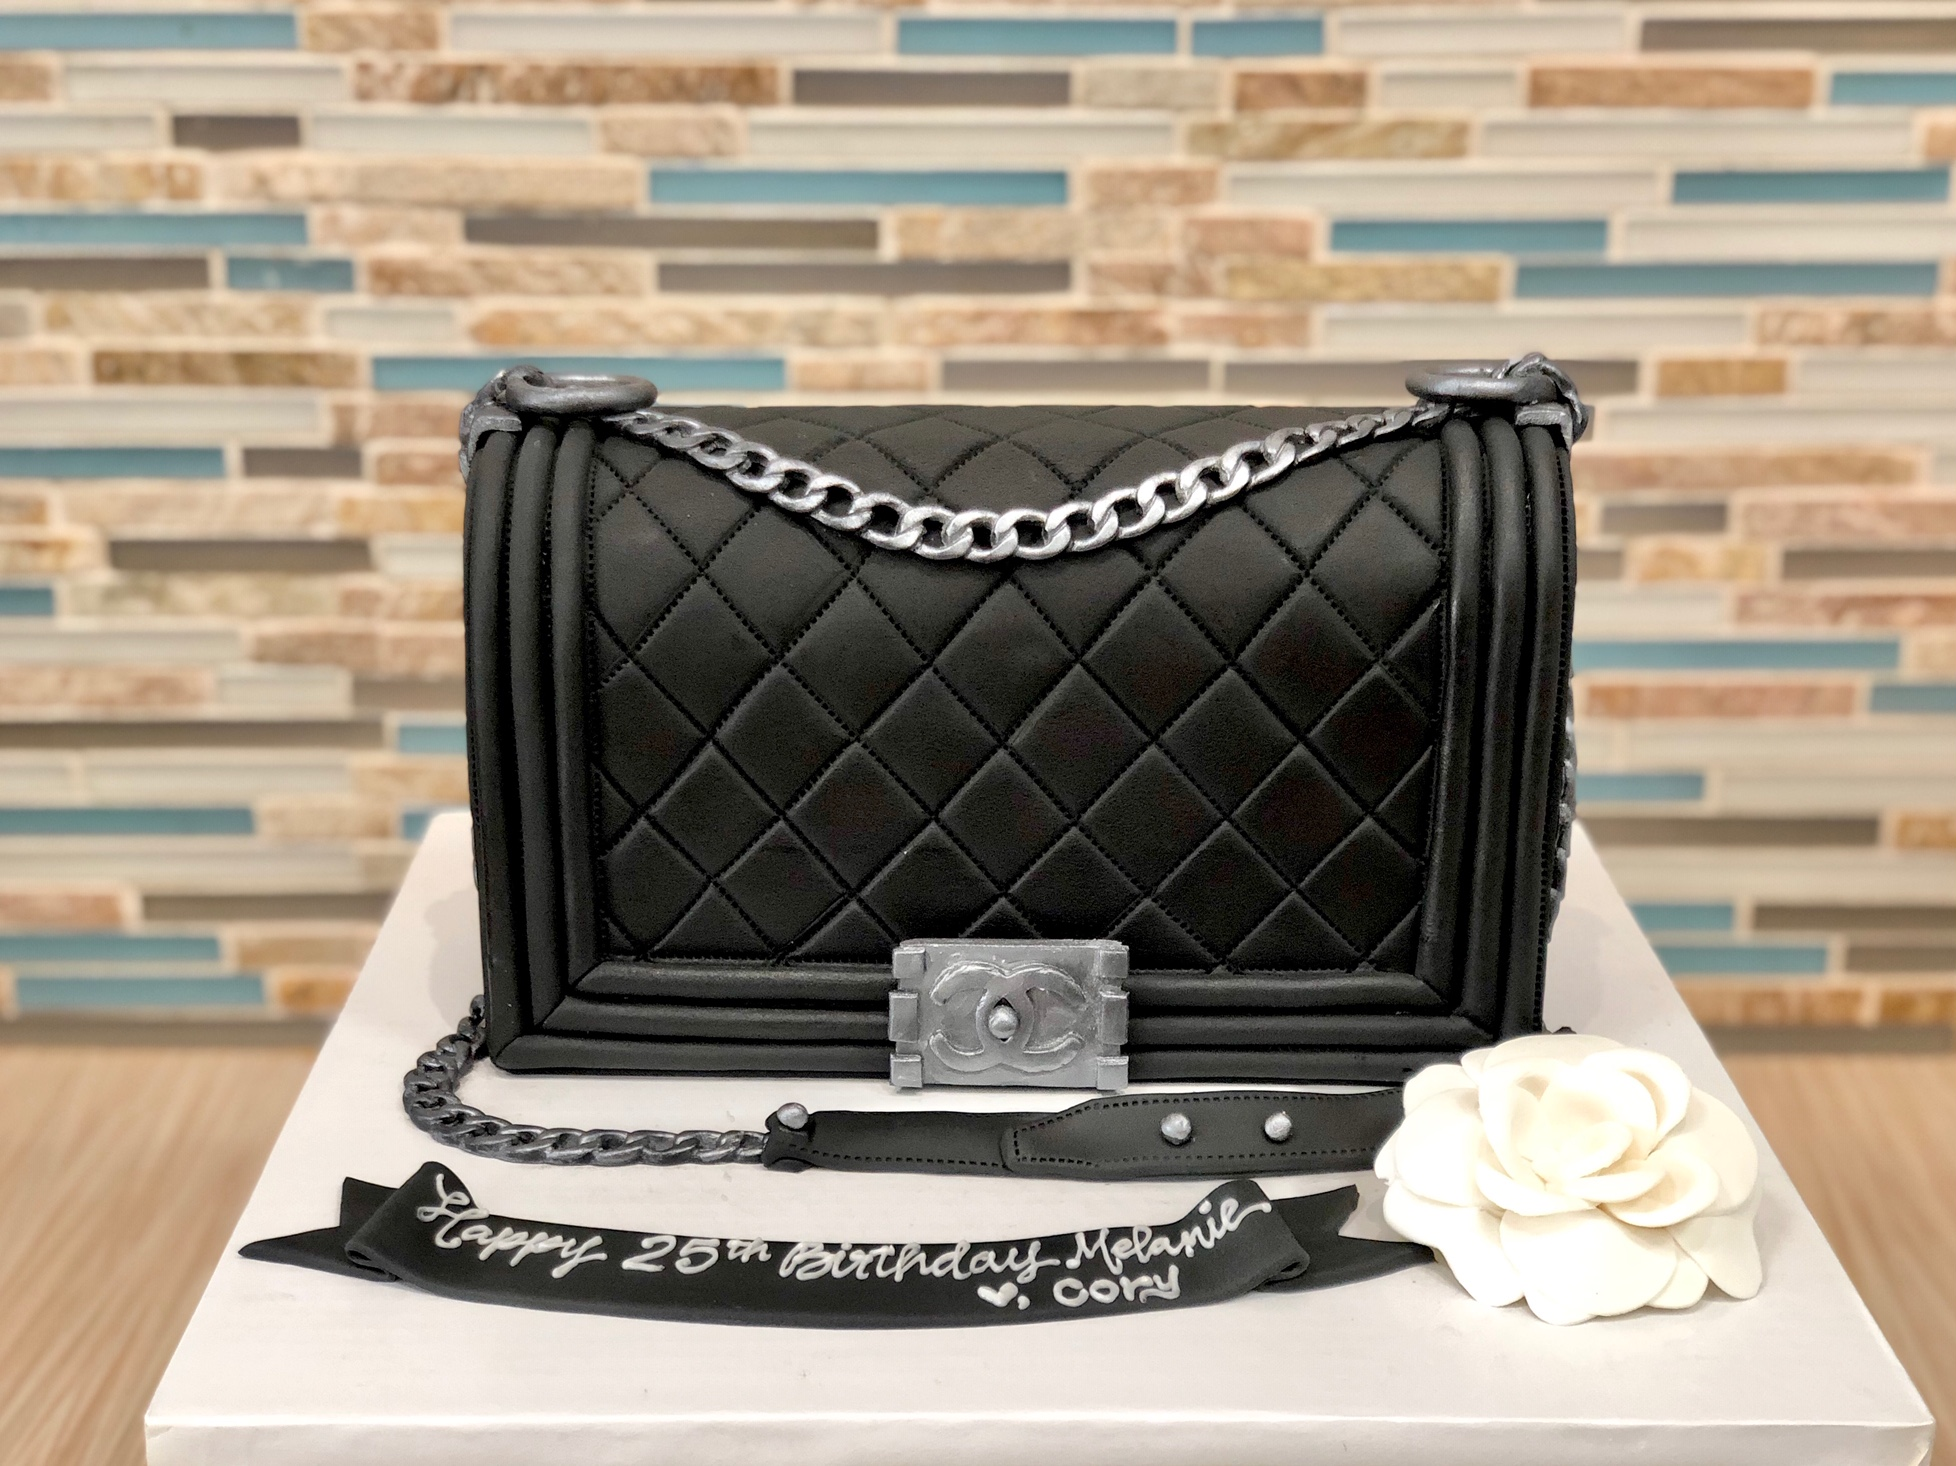 Chanel Boy Bag Birthday Cake